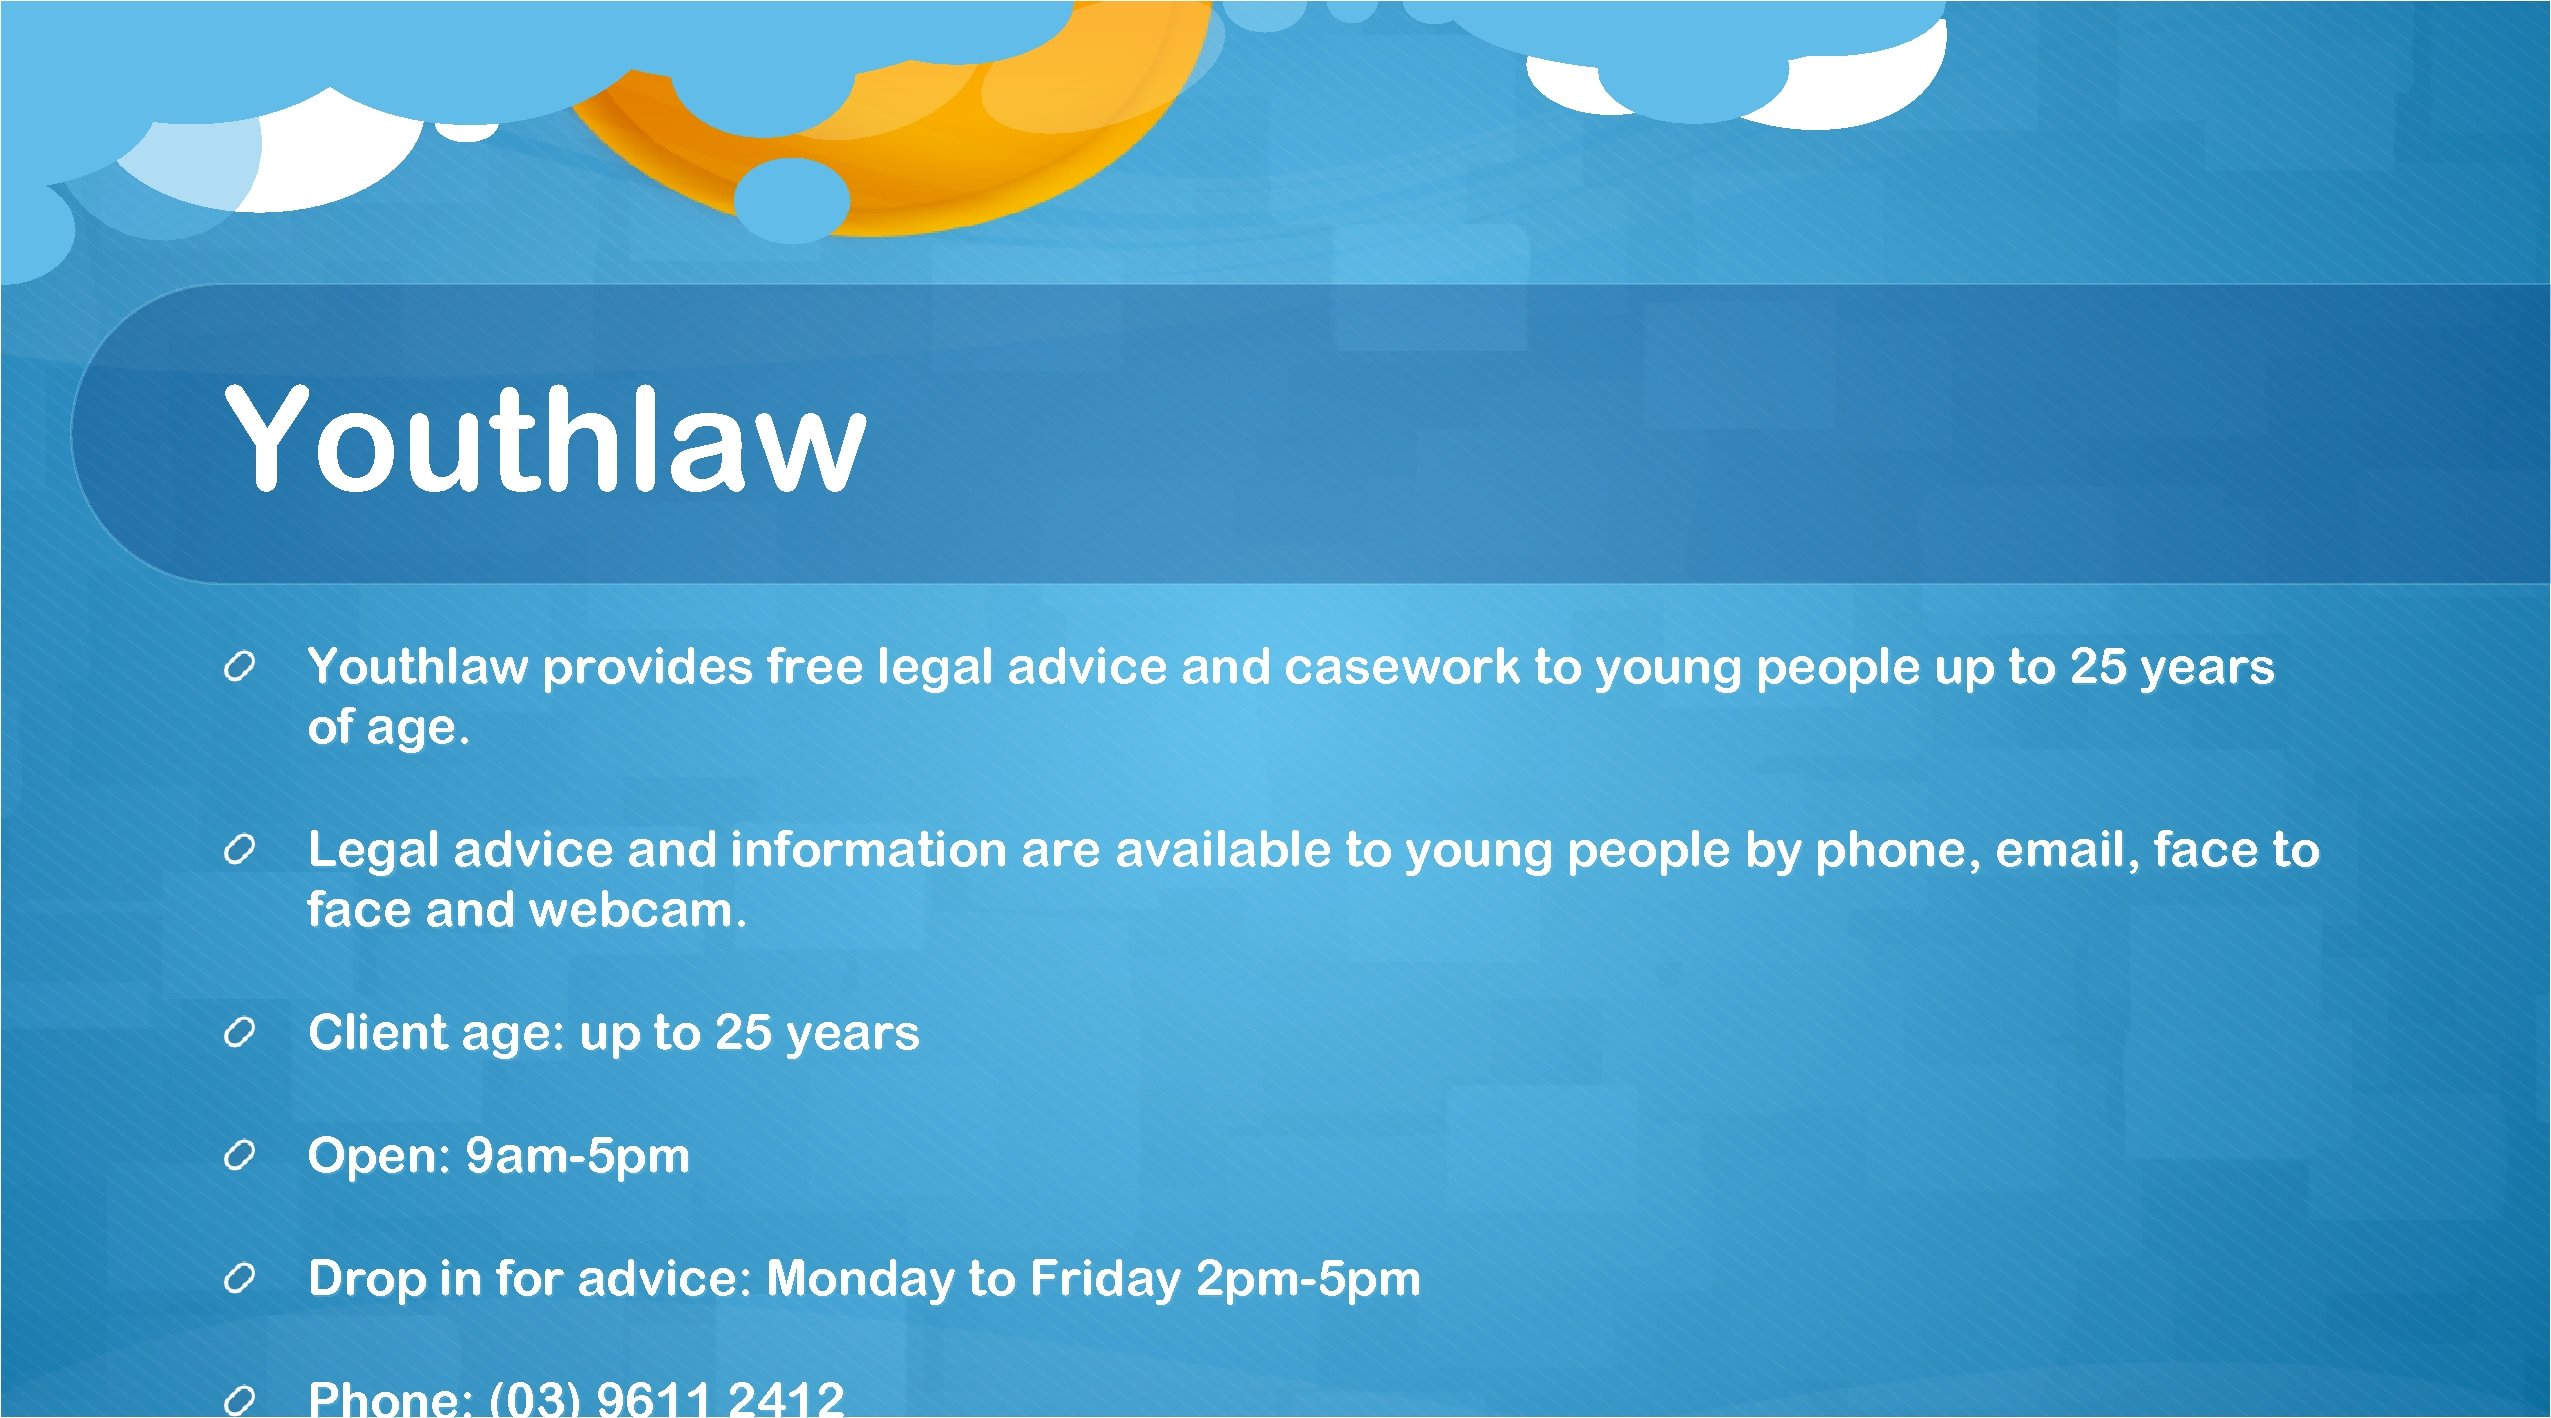 Youthlaw provides free legal advice and casework to young people up to 25 years